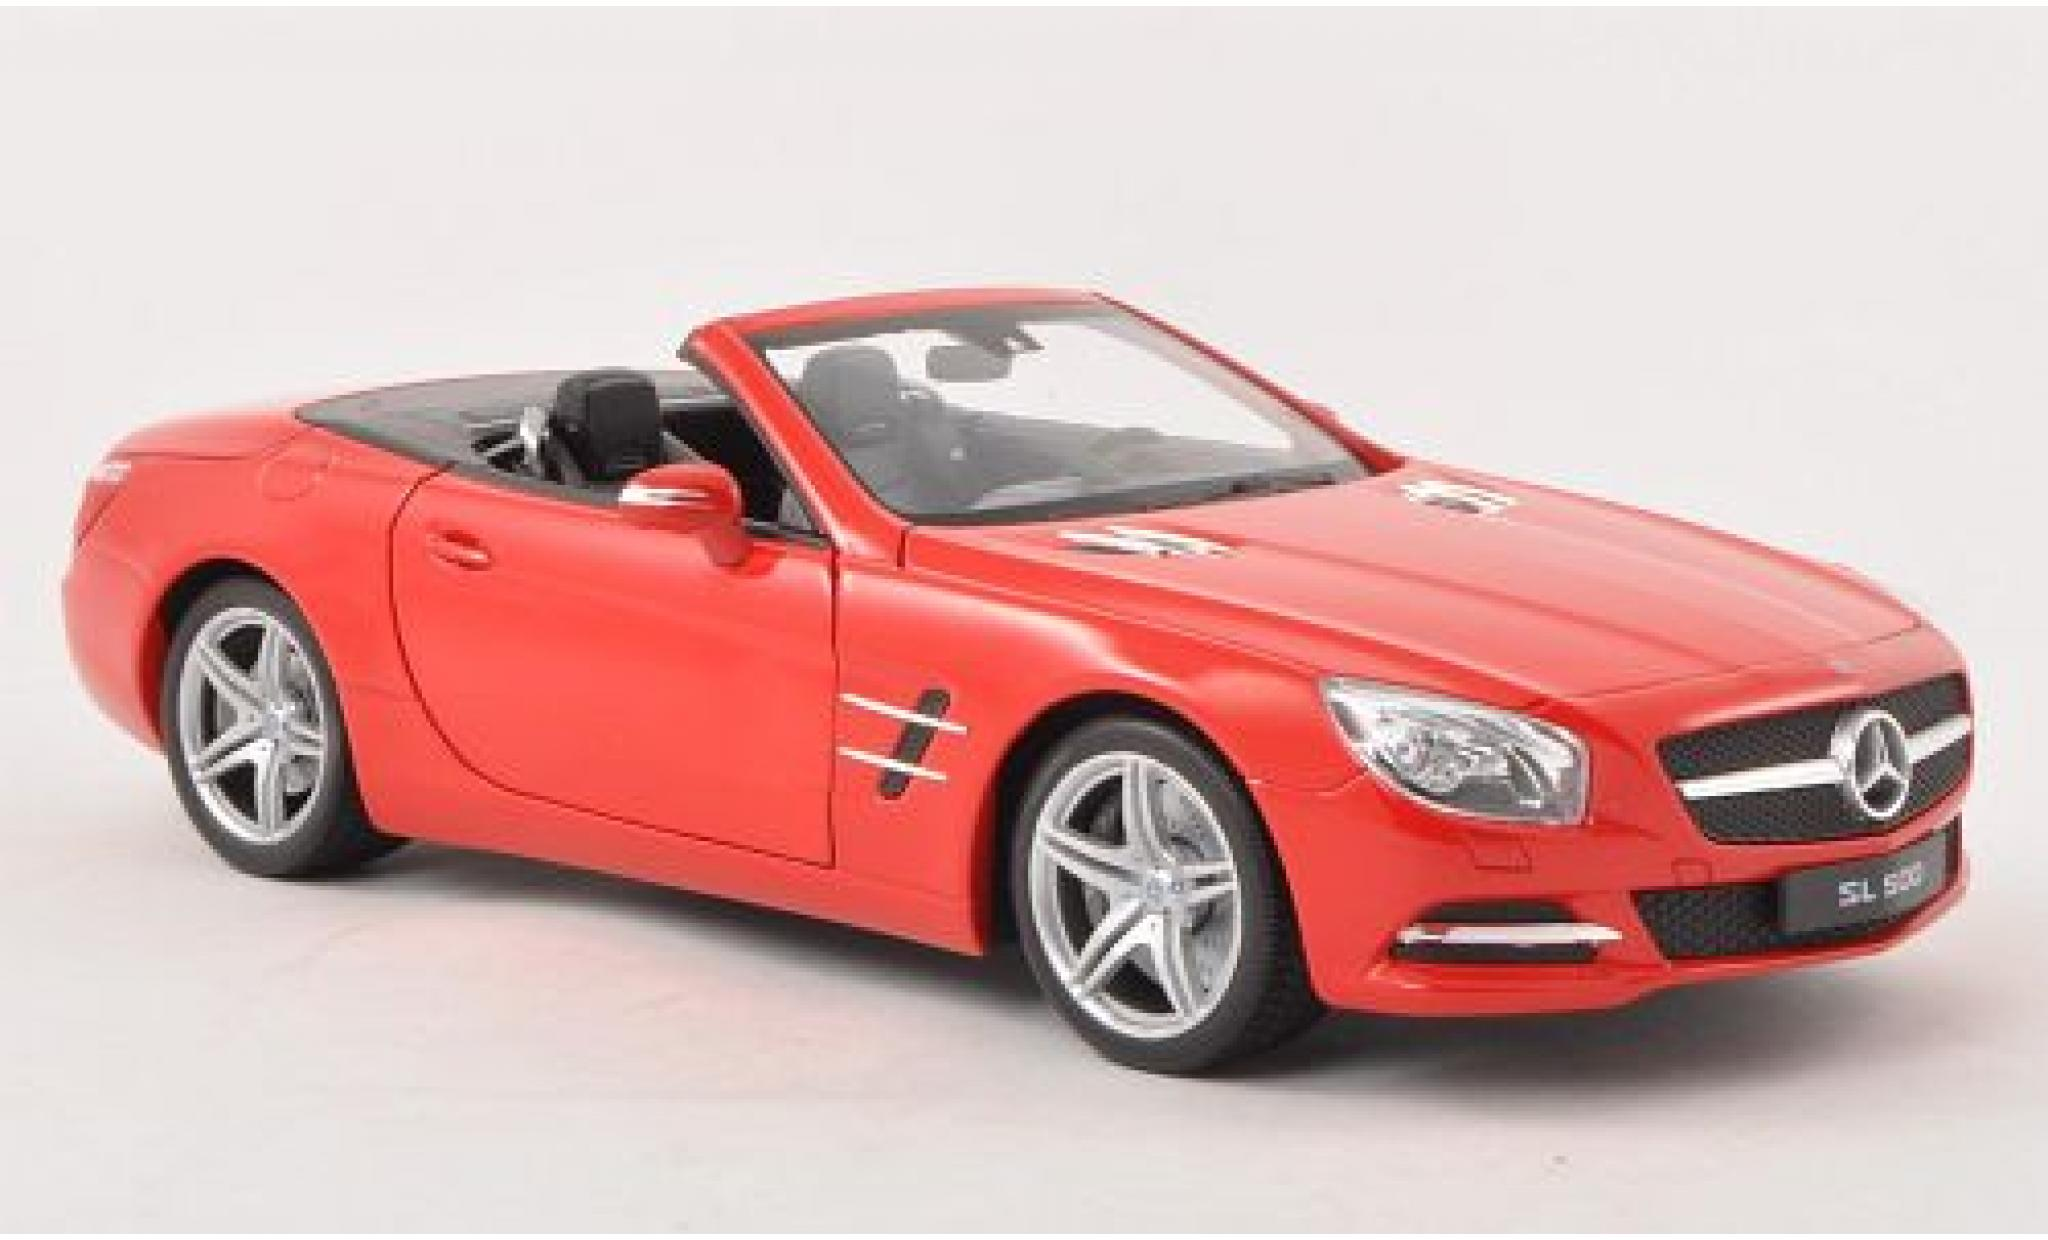 Mercedes Classe SL 1/18 Welly SL 500 (R231) rouge 2012 Verdeck ouvert